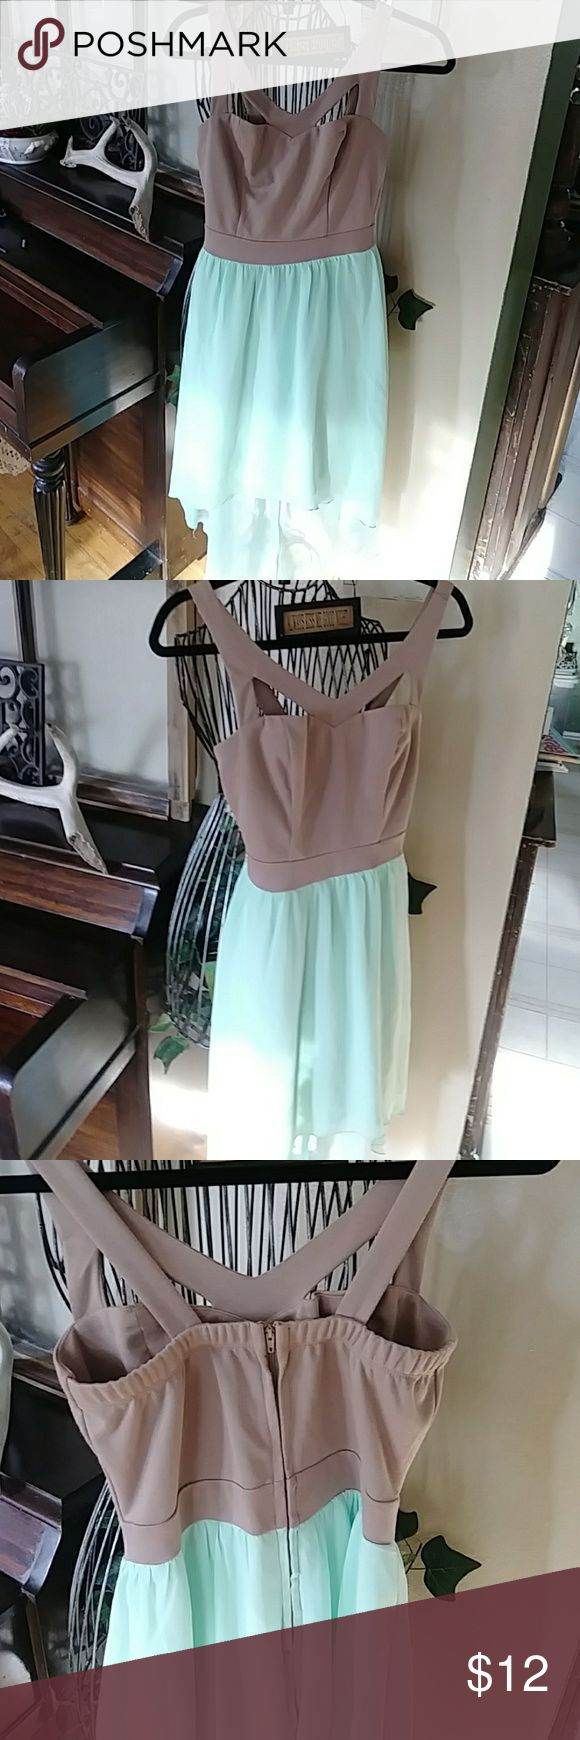 Charlotte Russe dress Size Medium Super darling Charlotte Russe dress in a size medium.   Excellent condition....Smoke free home located in beautiful Colorado ❄❄ Charlotte Russe Dresses